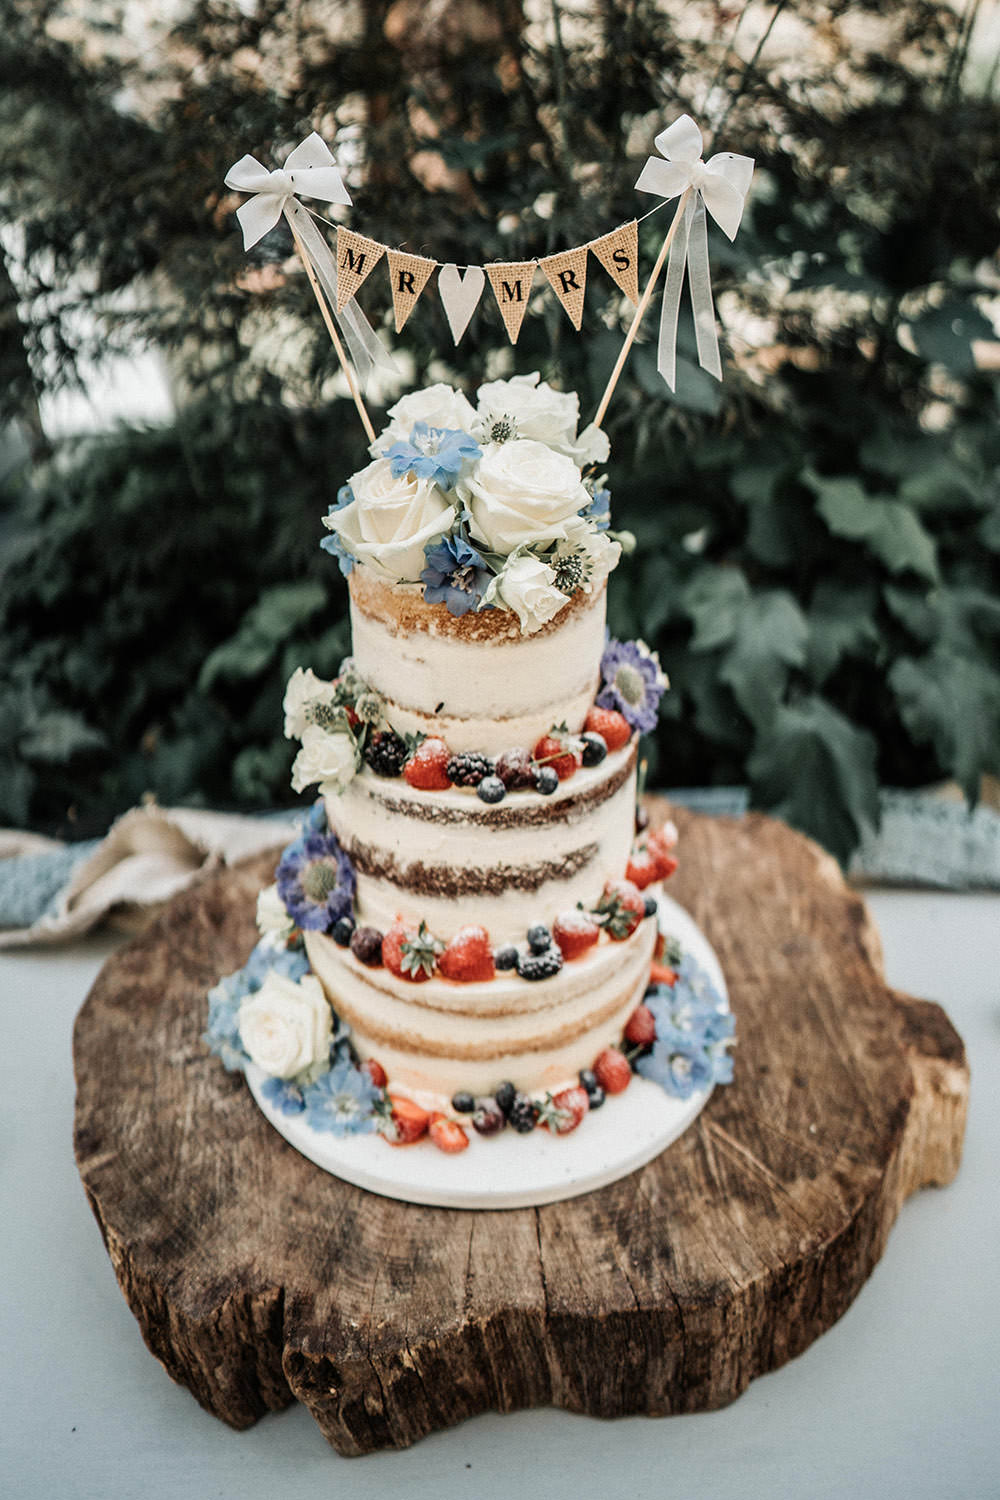 Semi Naked Cake Buttercream Fruit Berries Bunting Topper Layer Log Stand Ever After Wedding Younger Photography